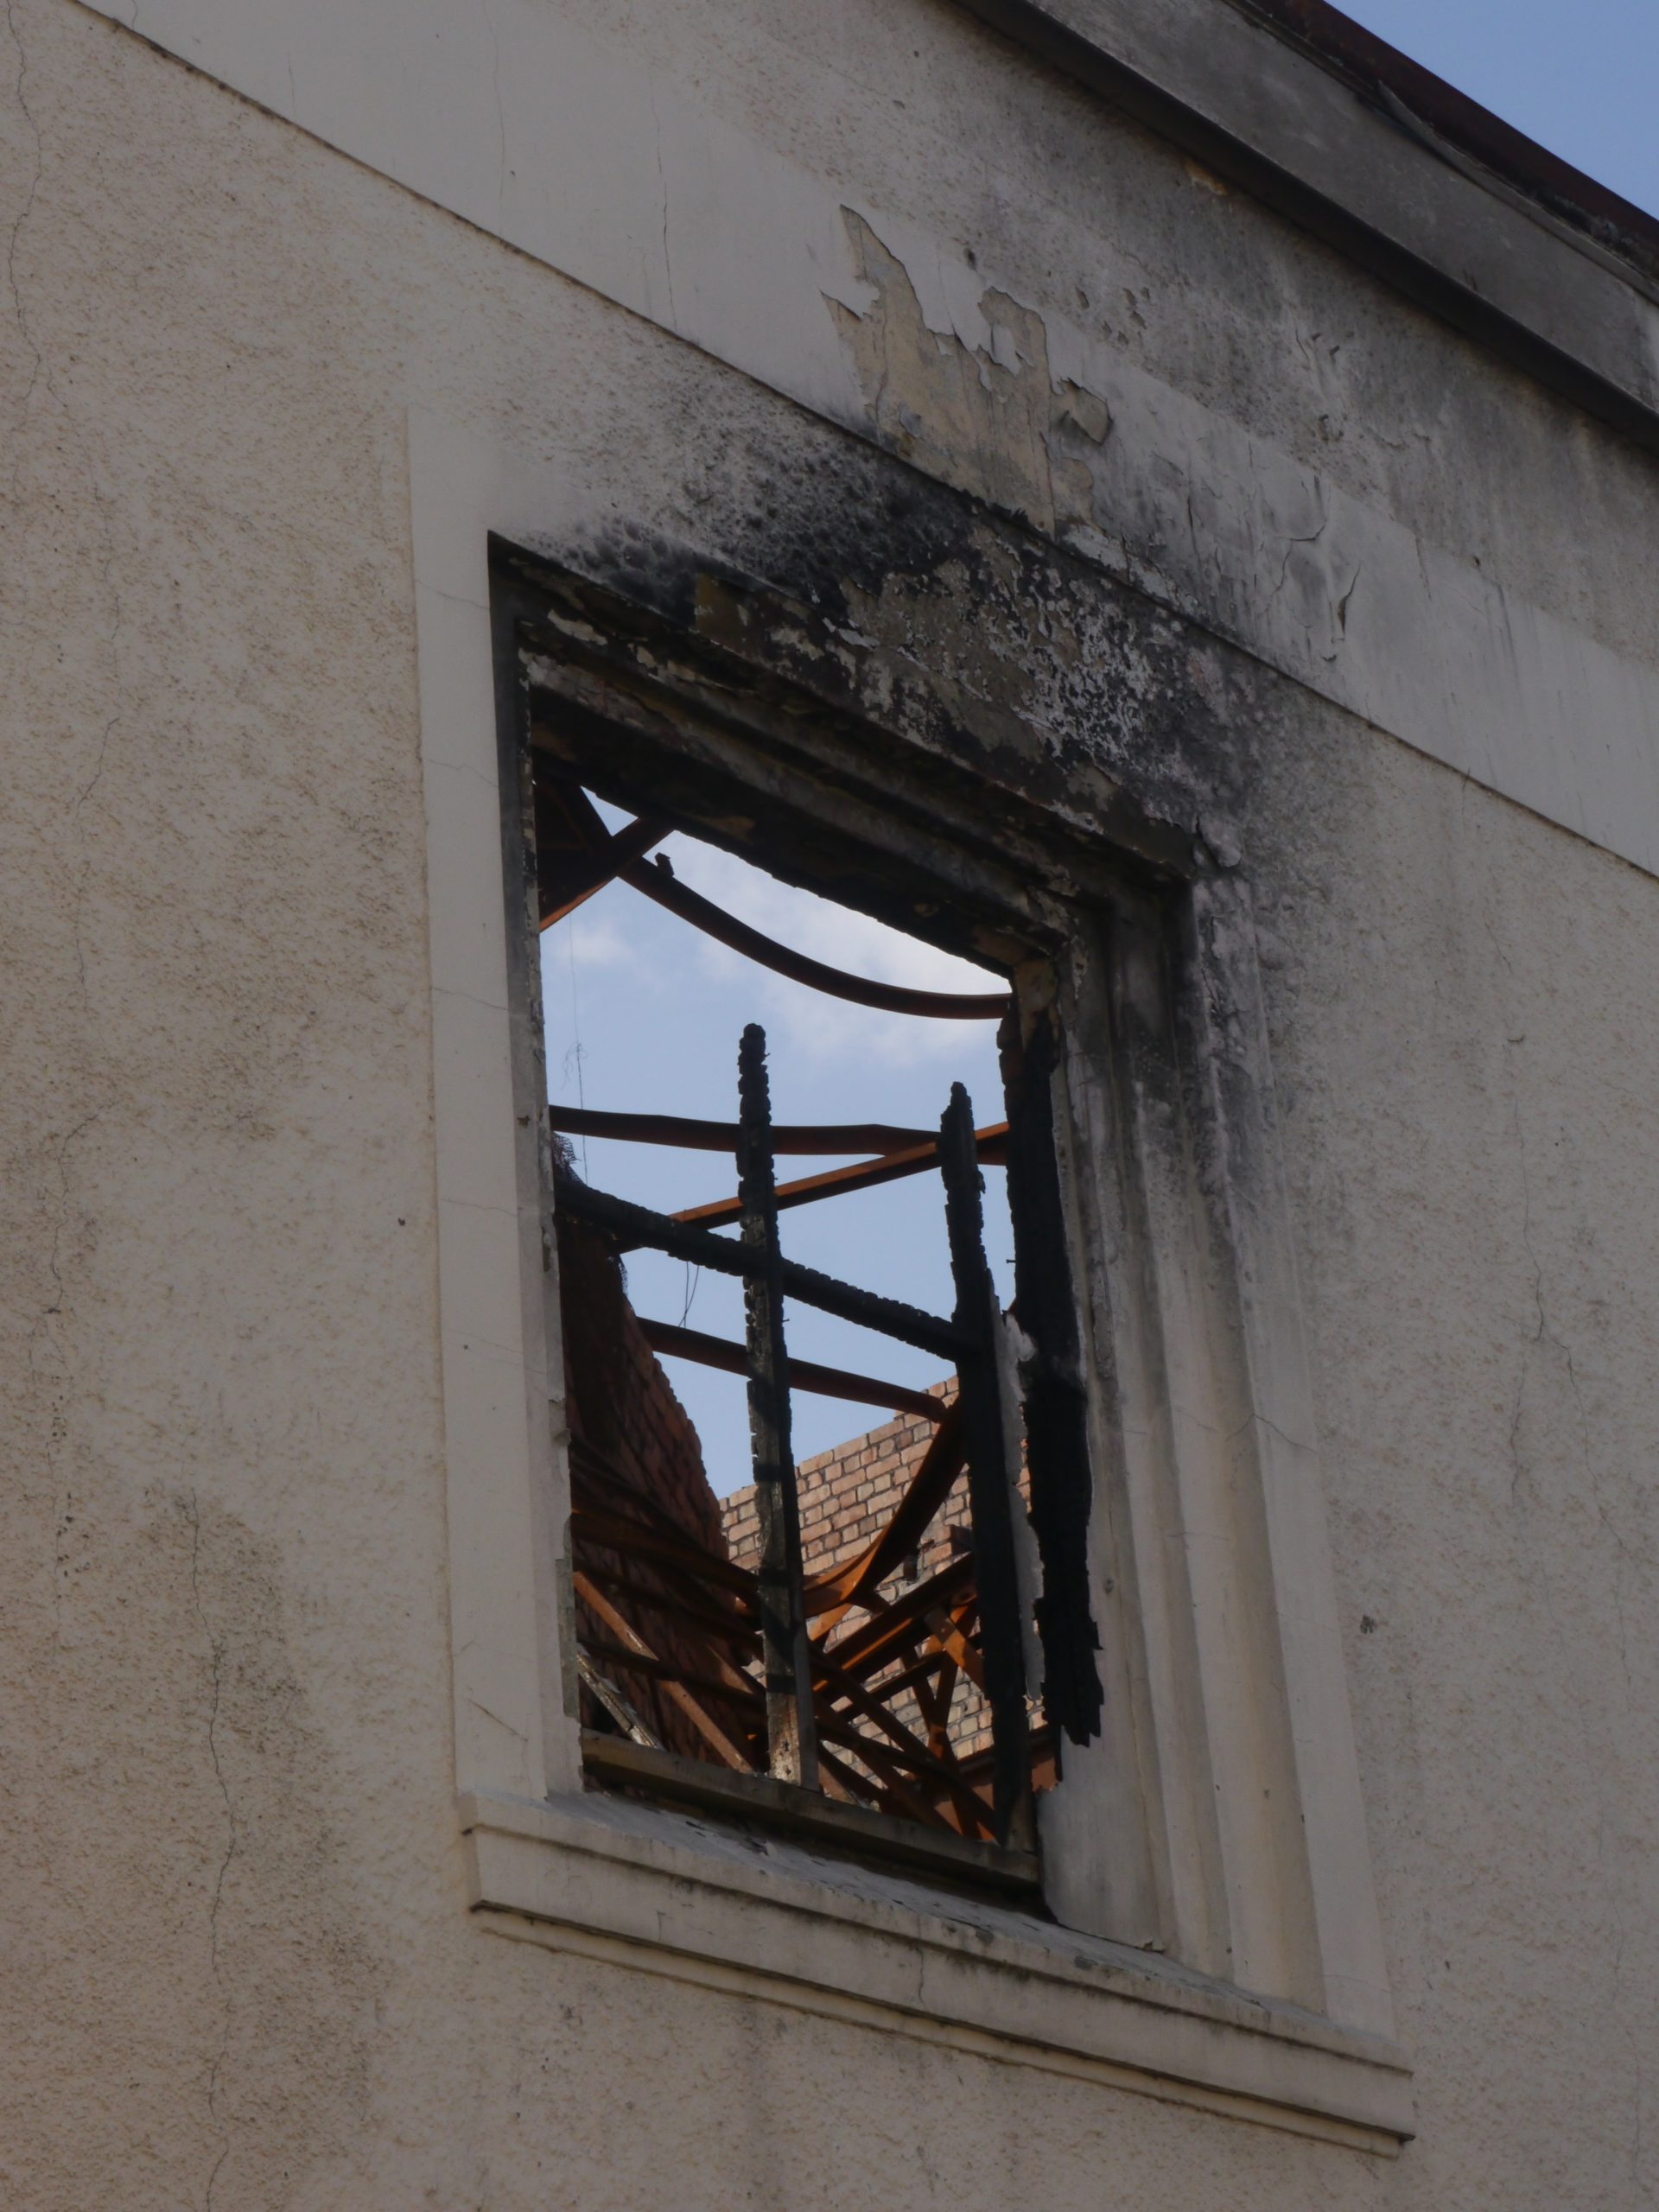 Bingo Hall Burned Window by Tamsin Stirling